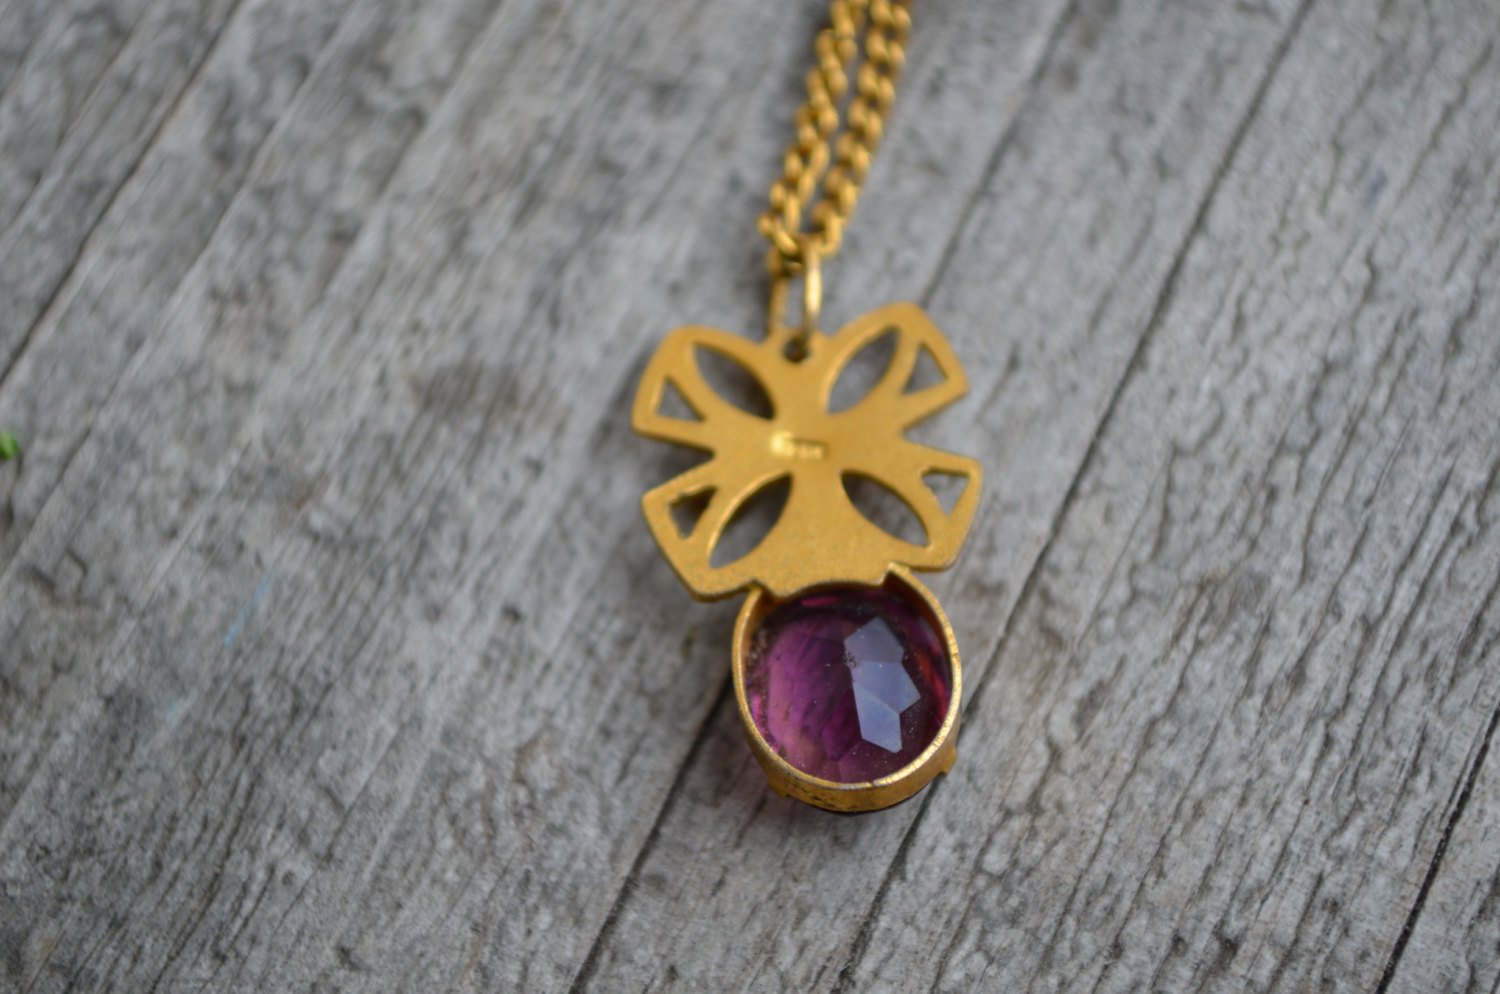 Vintage pendant with purple art glass,1950s , gold tone pendant, filigre pendant with chain, gift fo